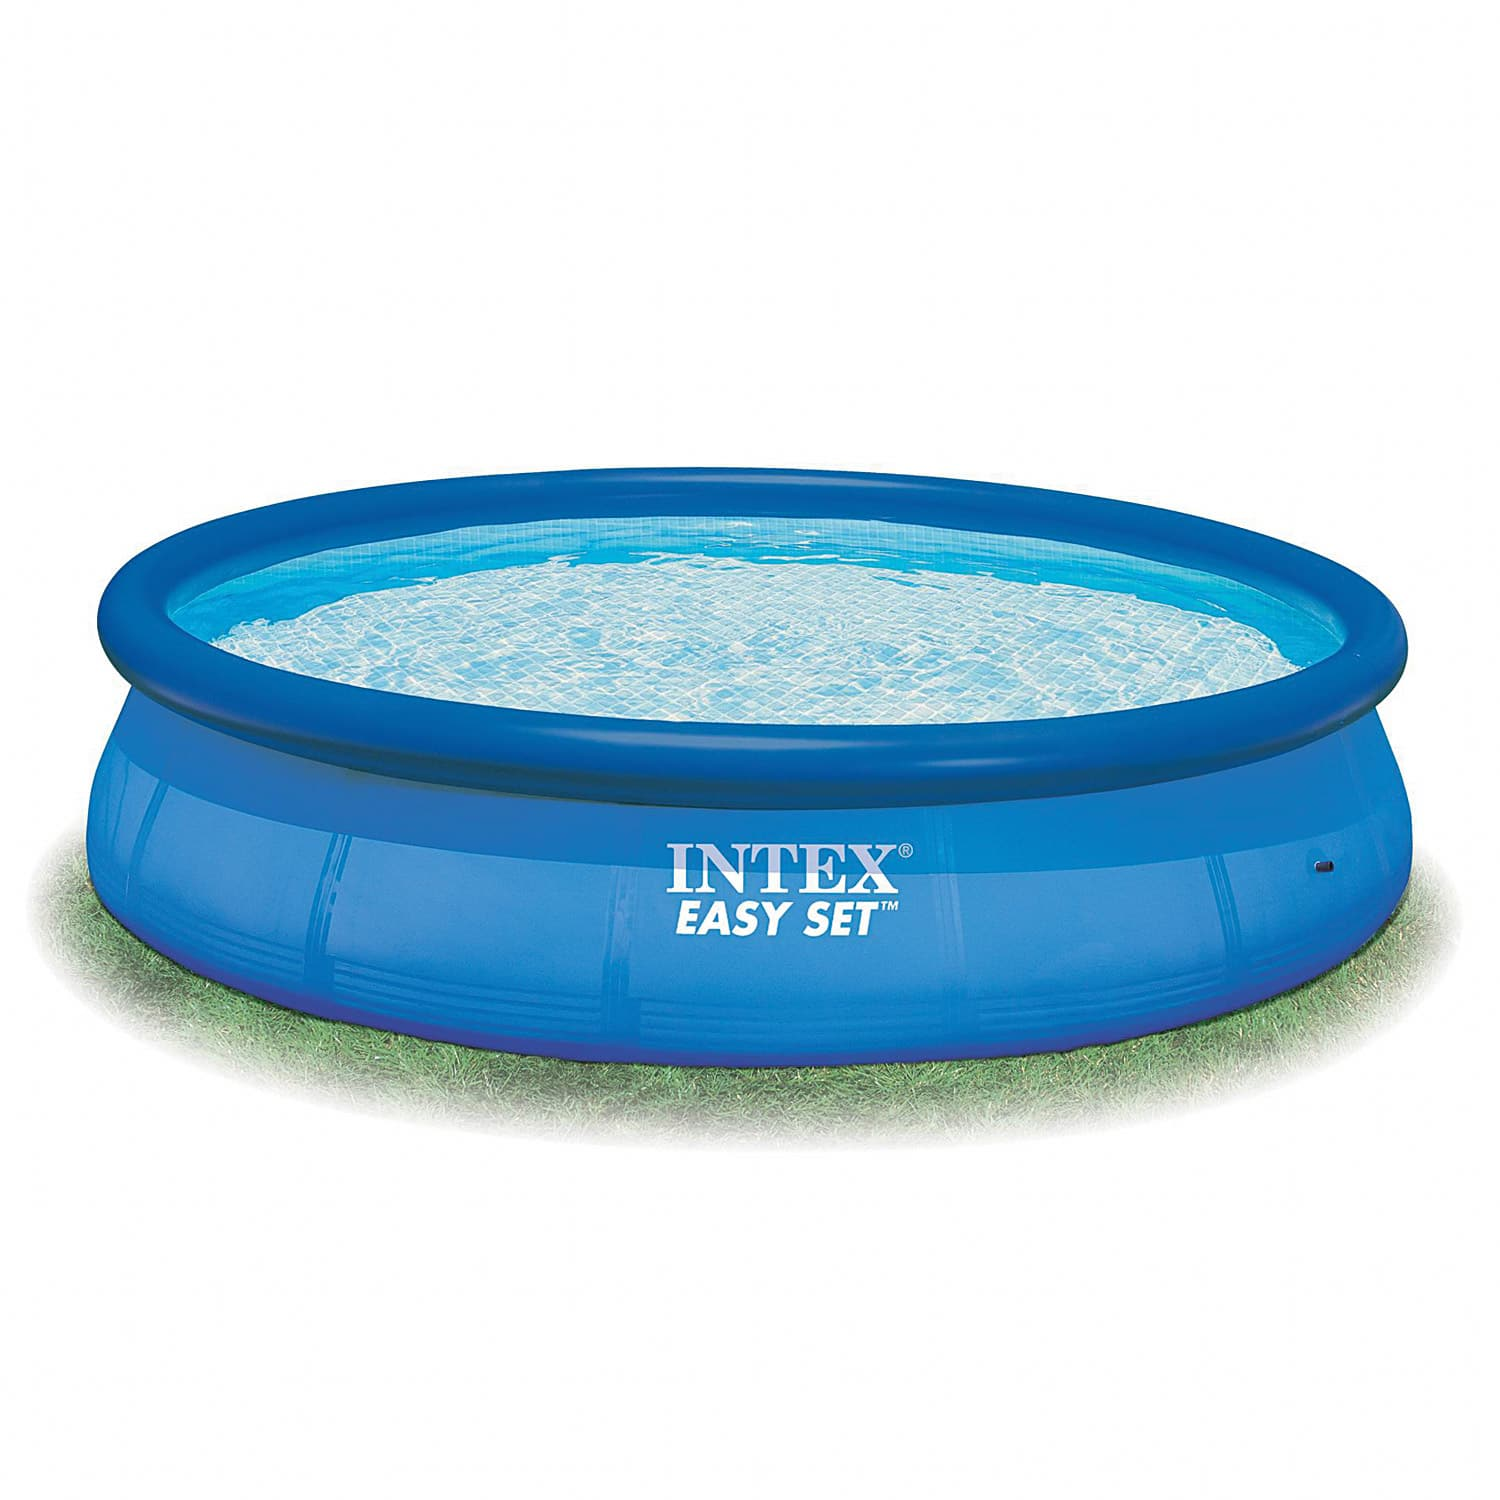 Intex Poolfolie / Ersatzfolie Swimming Pool Easy